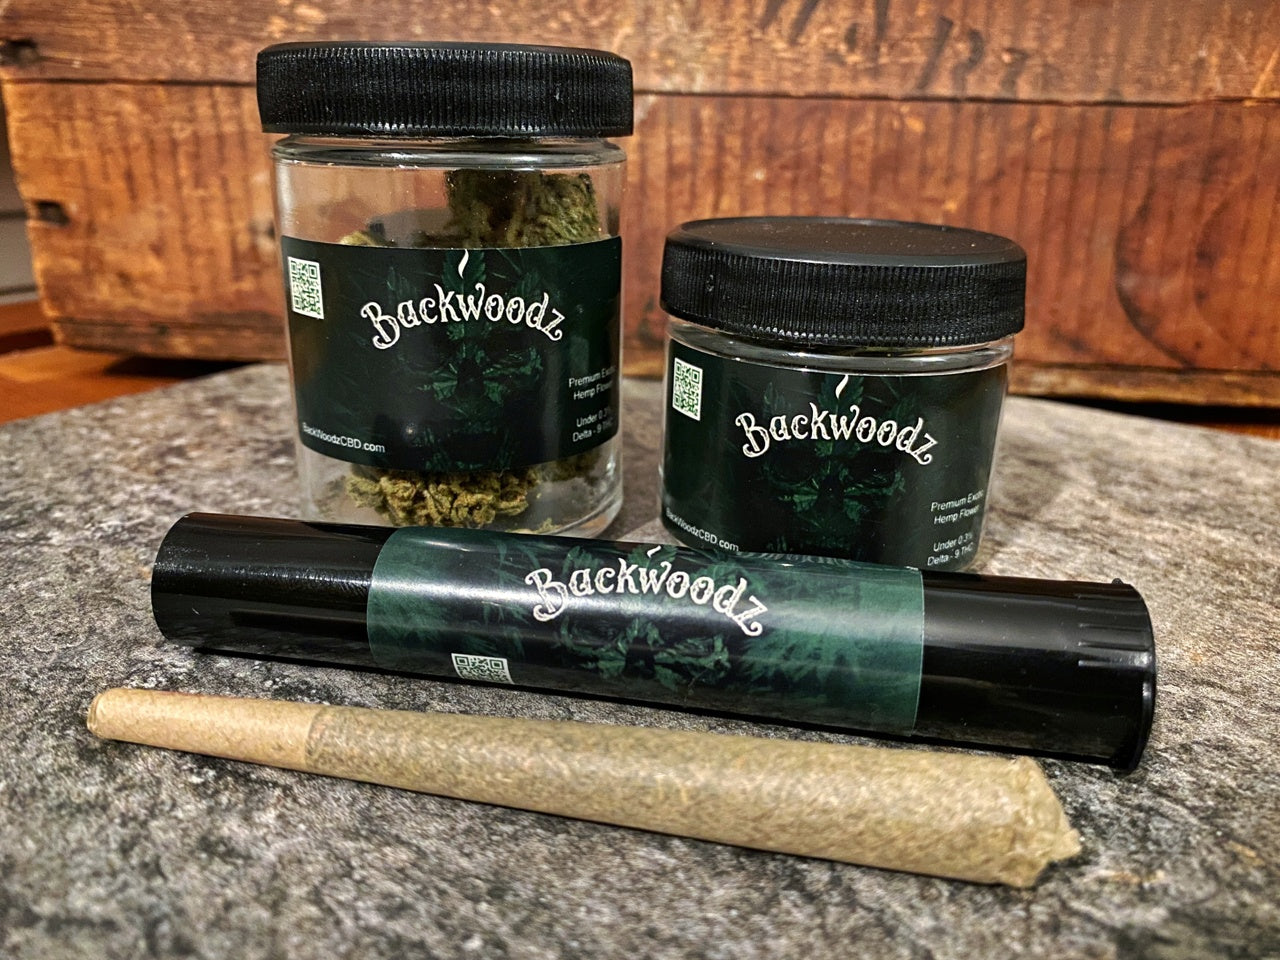 BackWoodz CBD Products and Top Shelf CBD Hemp Flowerlf